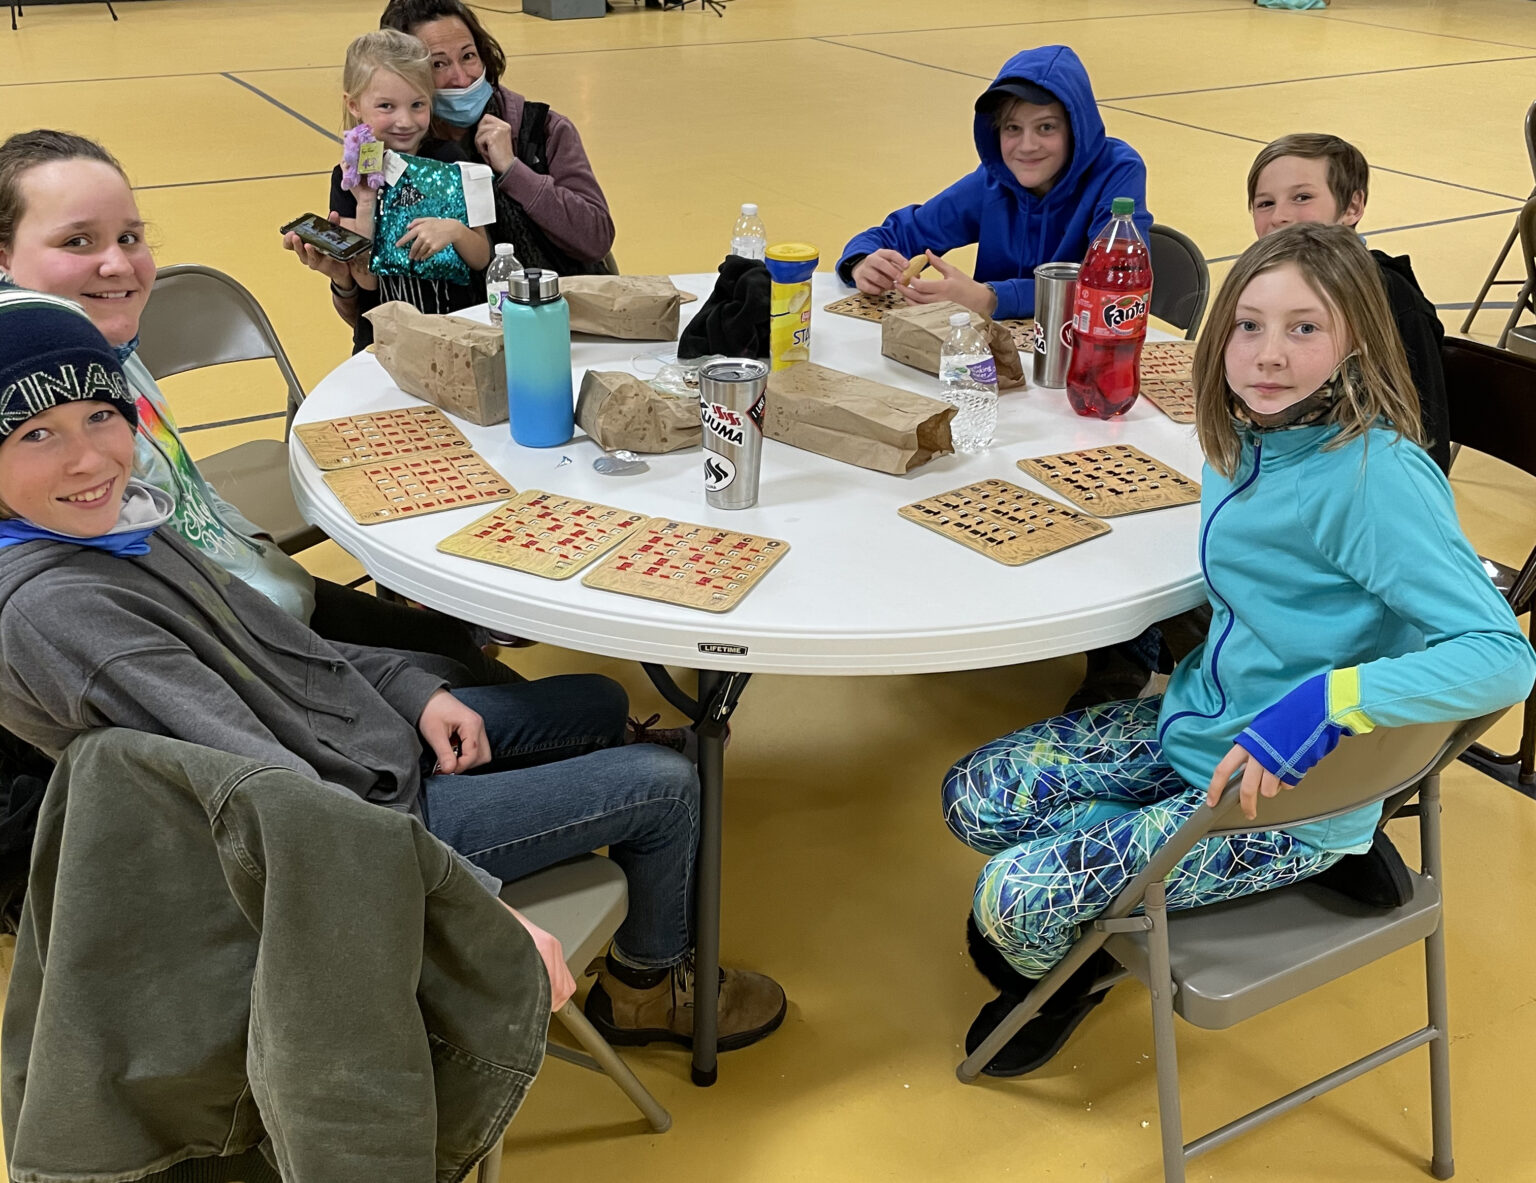 A group of home school students sit at a round table playing bingo at the Vinton Skate and Activity Center.